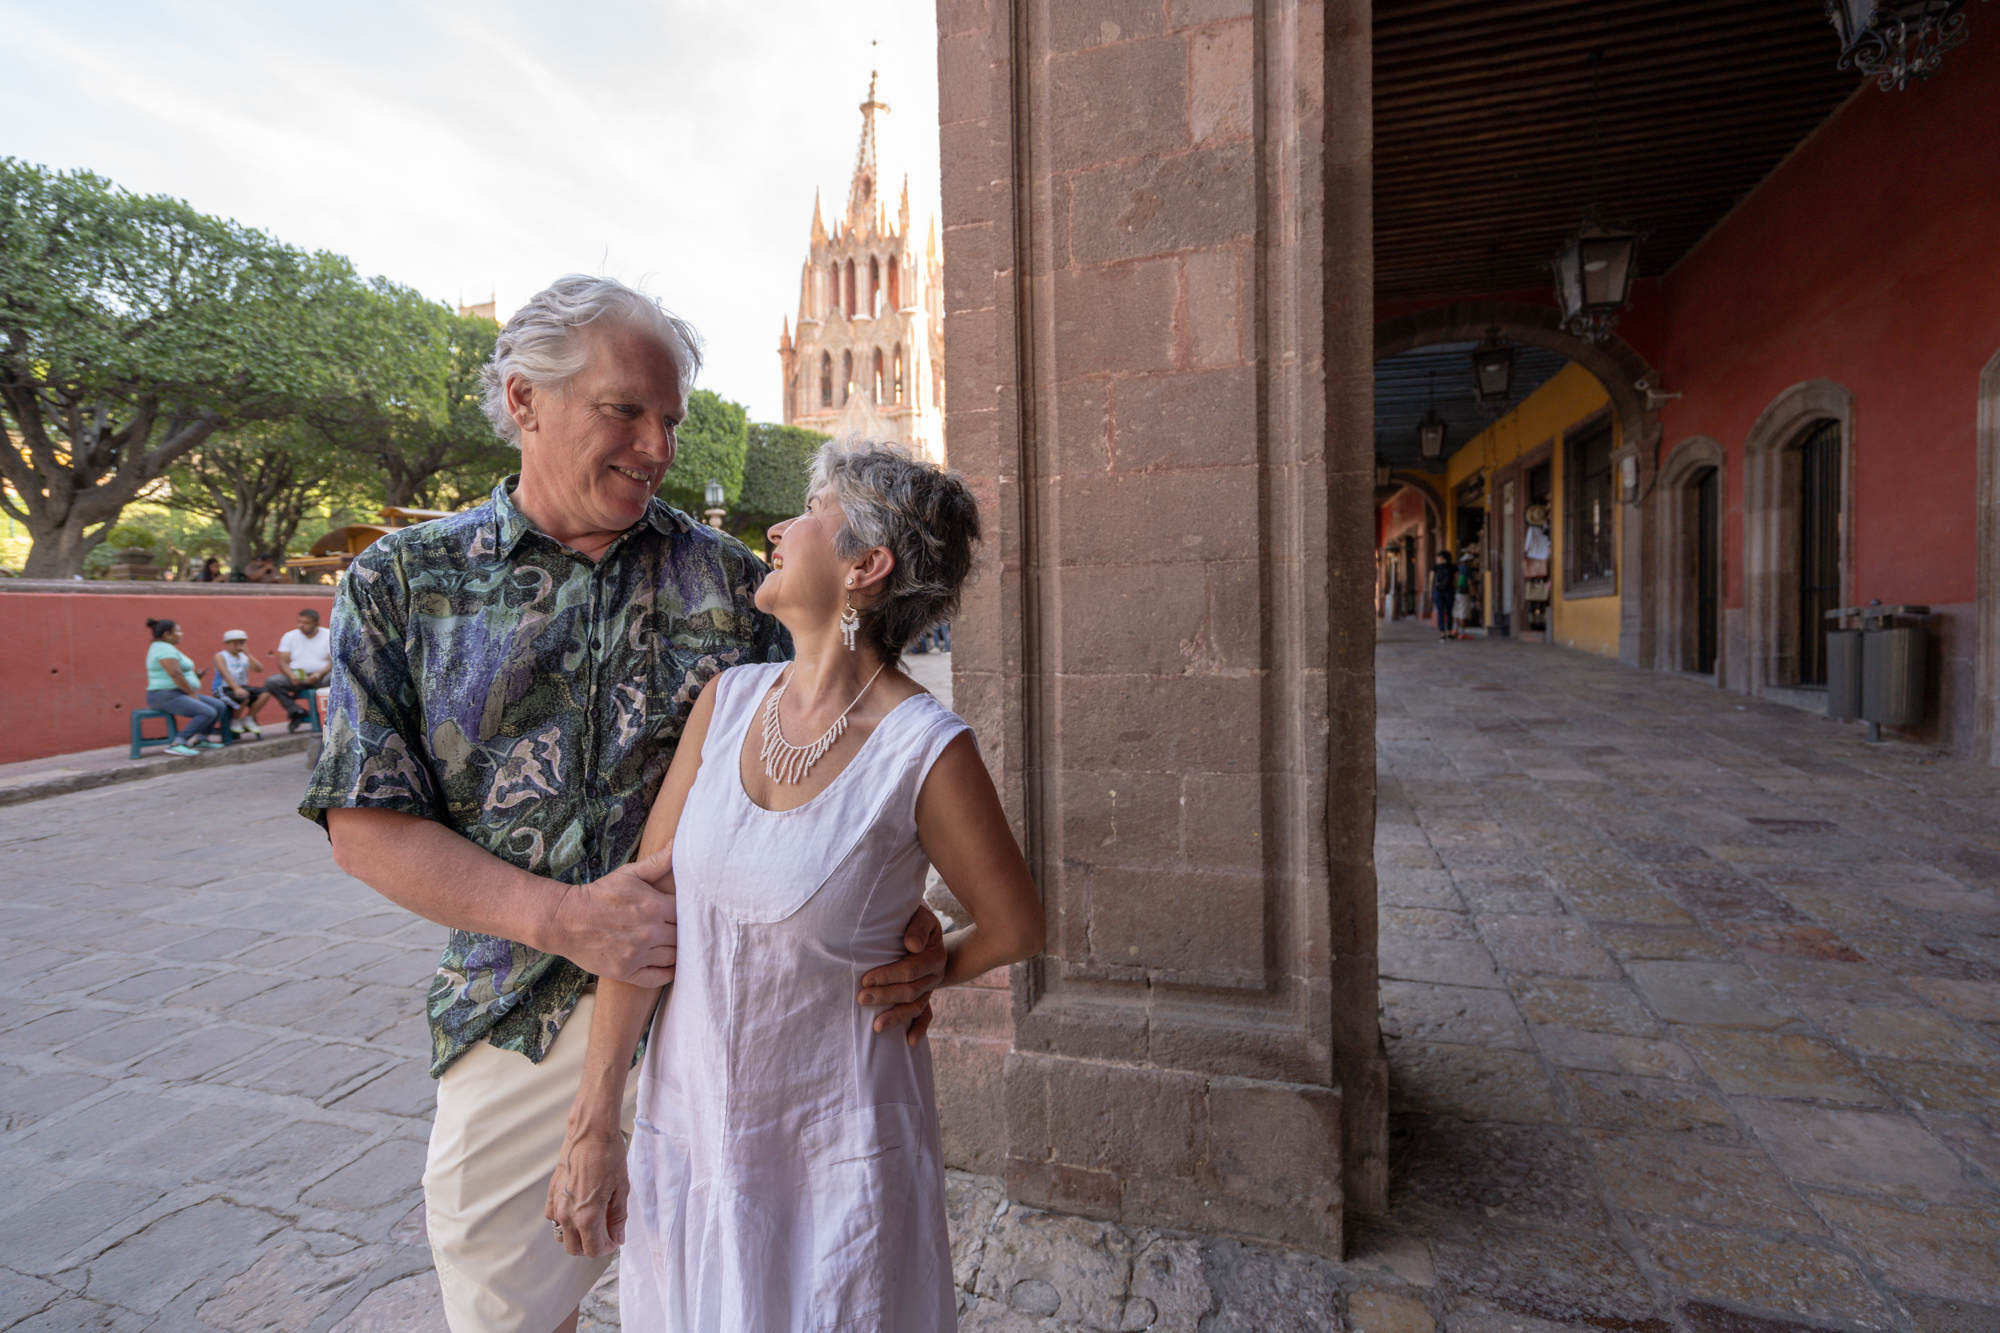 Photoshoot session in San Miguel de Allende with Suzanne and Leo-5.jpg